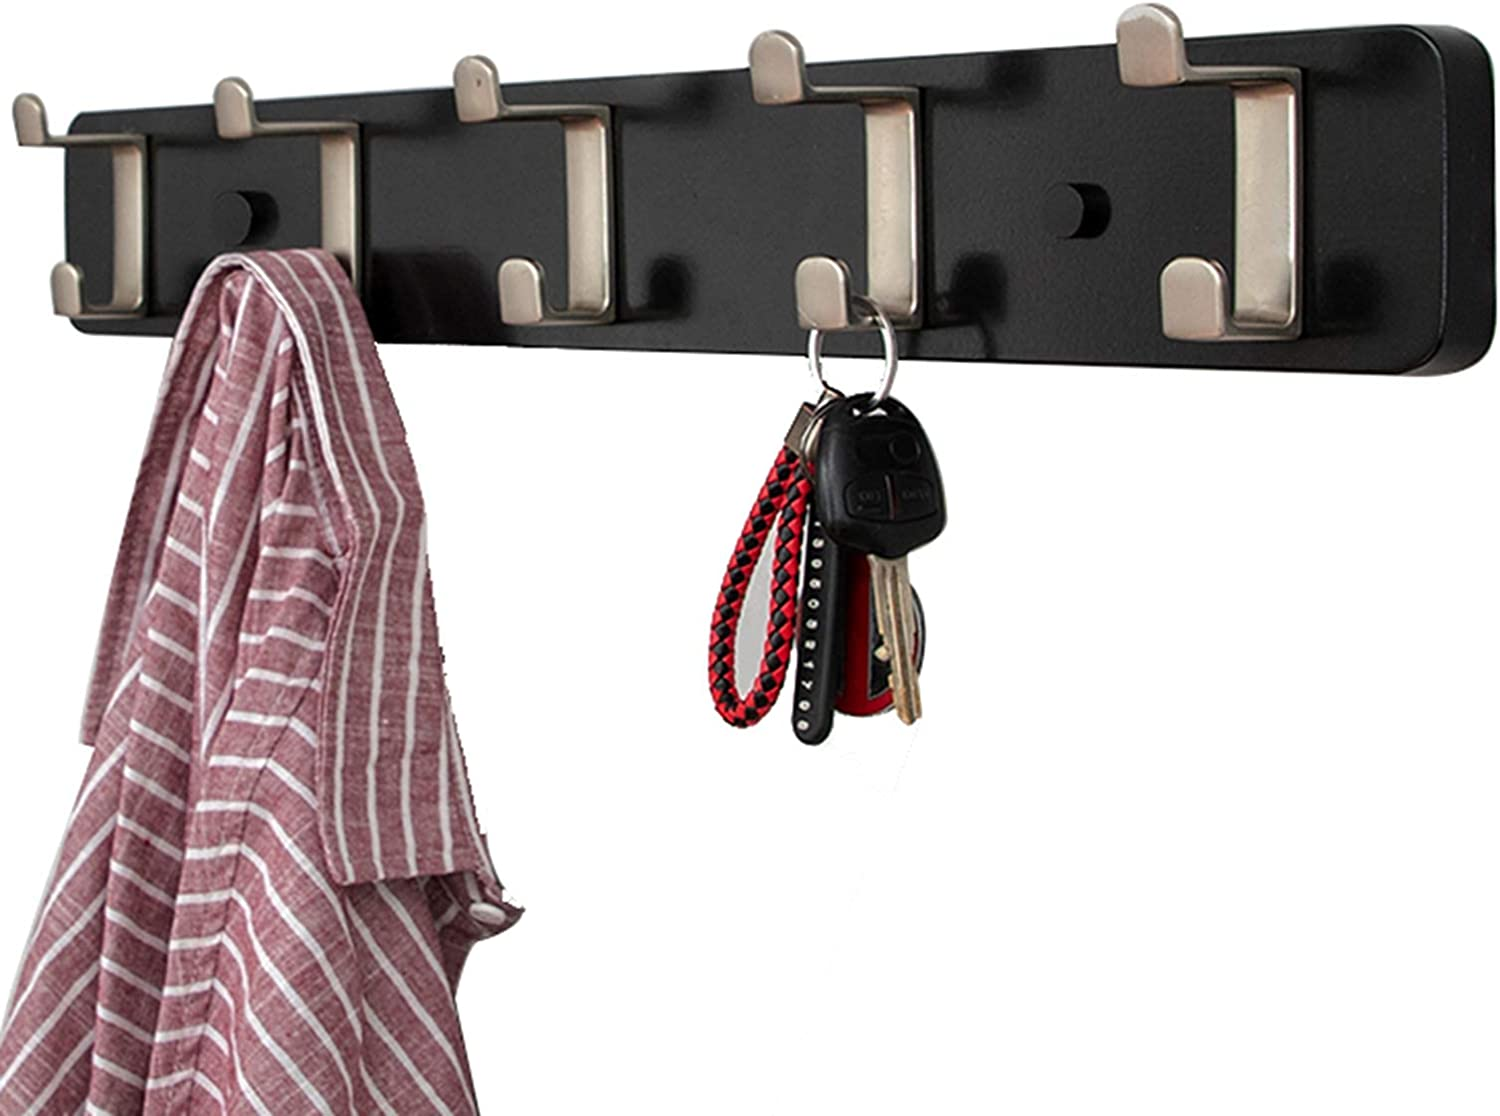 HLWJXS Coat Rack Max 65% OFF 5-Hook Wall Hooks In a popularity Hangin 24 inch for